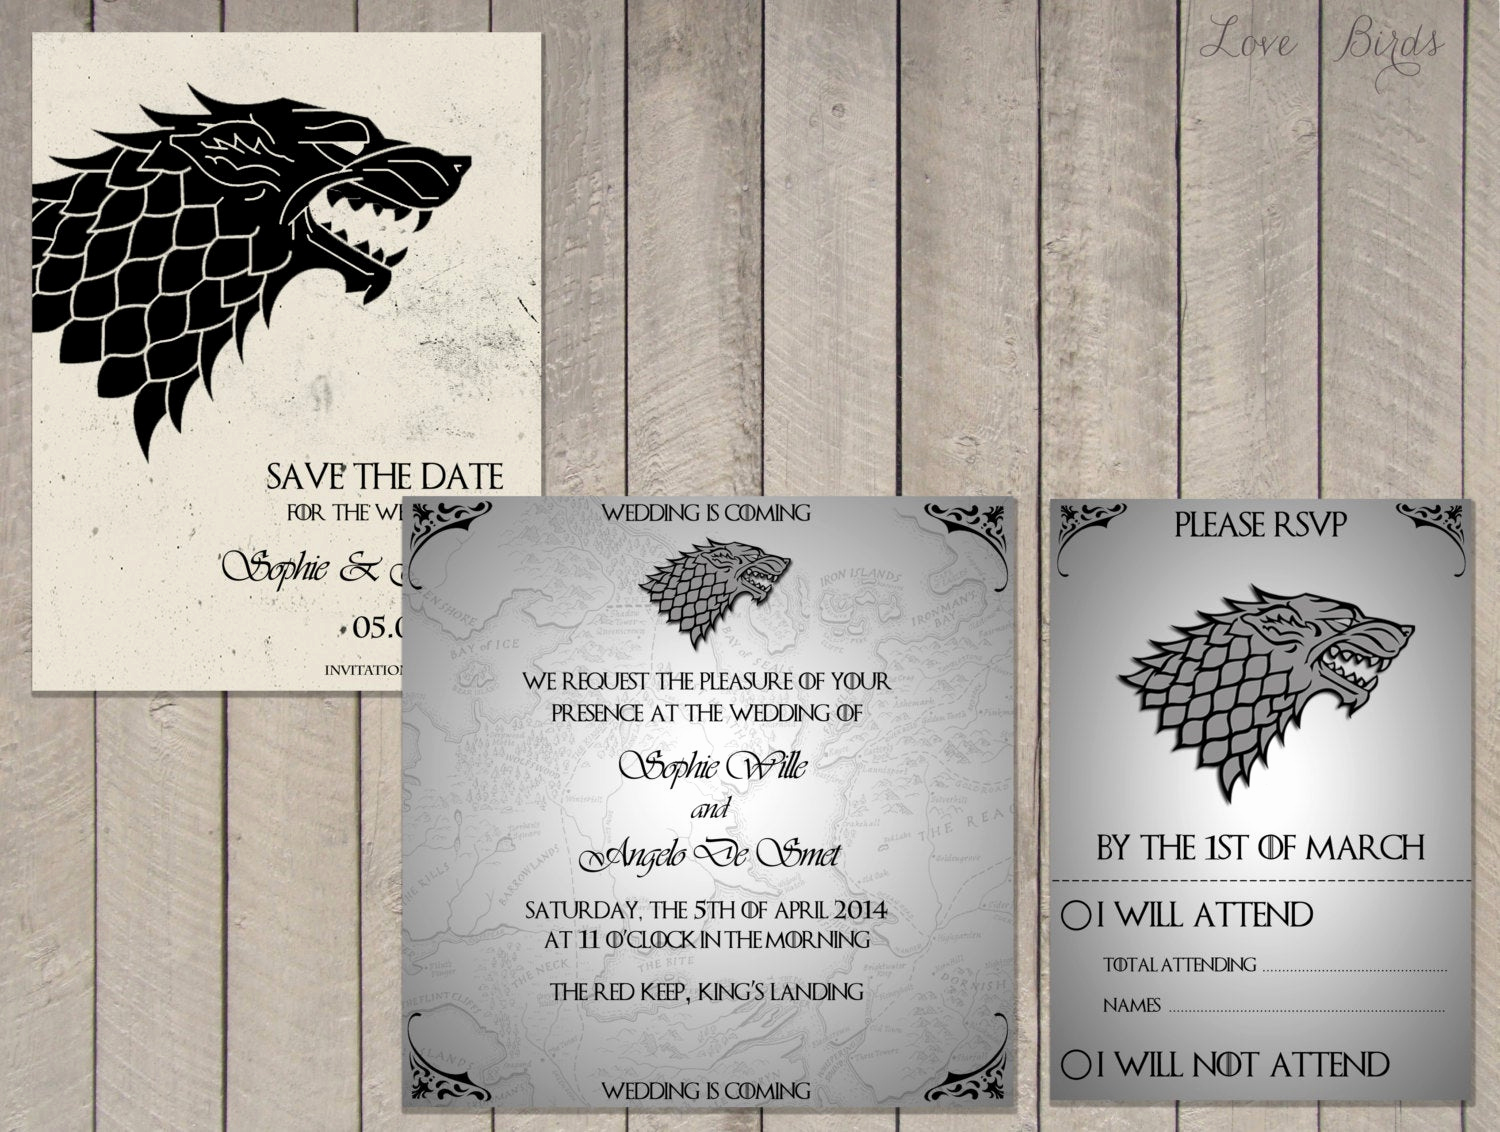 Game Of Thrones Invitation Elegant Wedding Invitation Set Game Of Thrones House Stark Save the